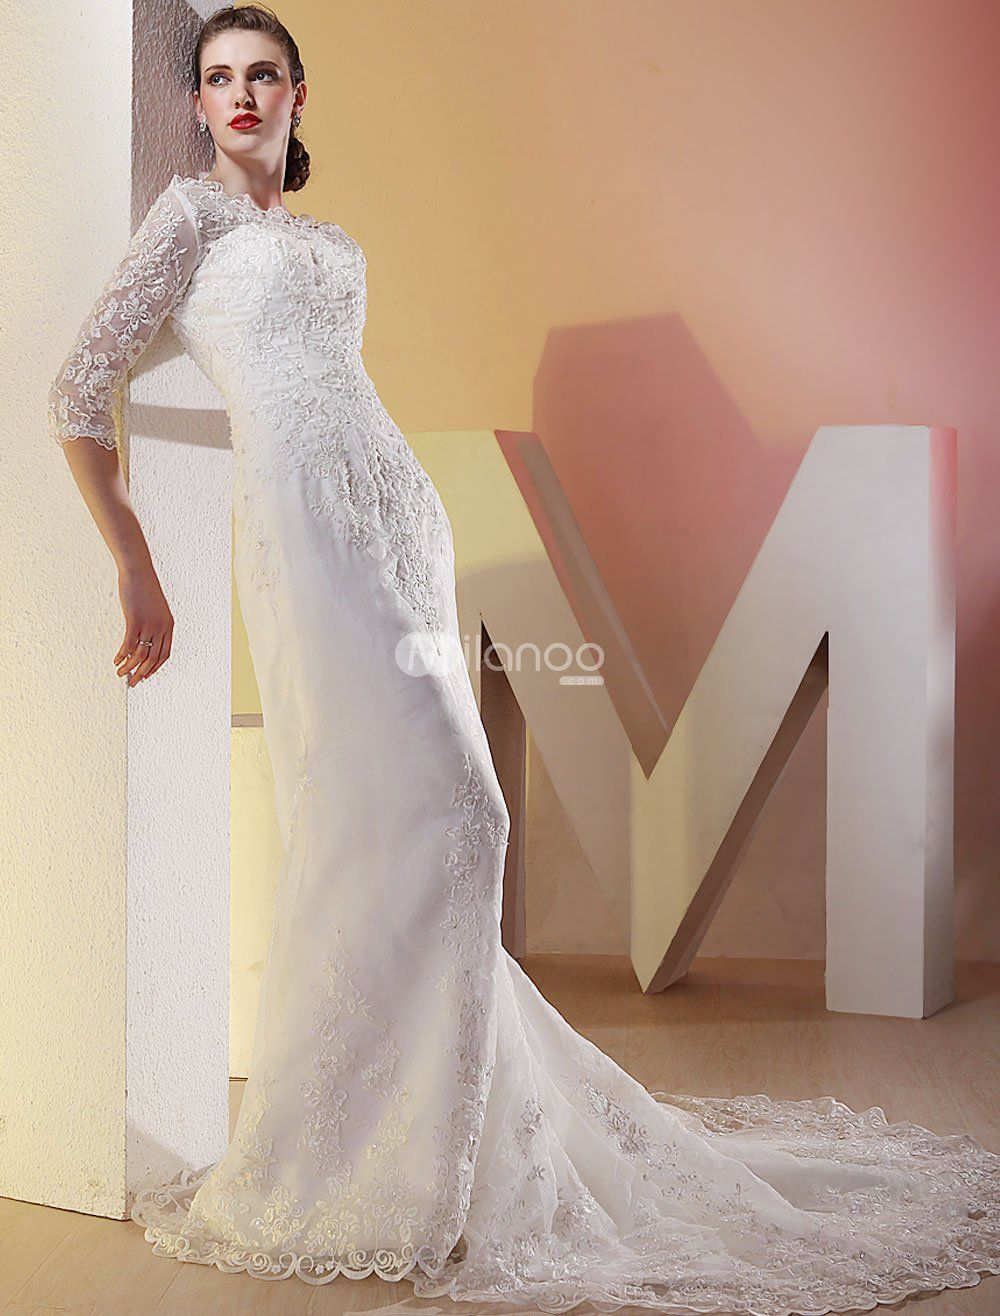 White lace wedding dress with sleeves  White Satin Three Quarter Sleeves Floor Length Luxury Wedding Dress